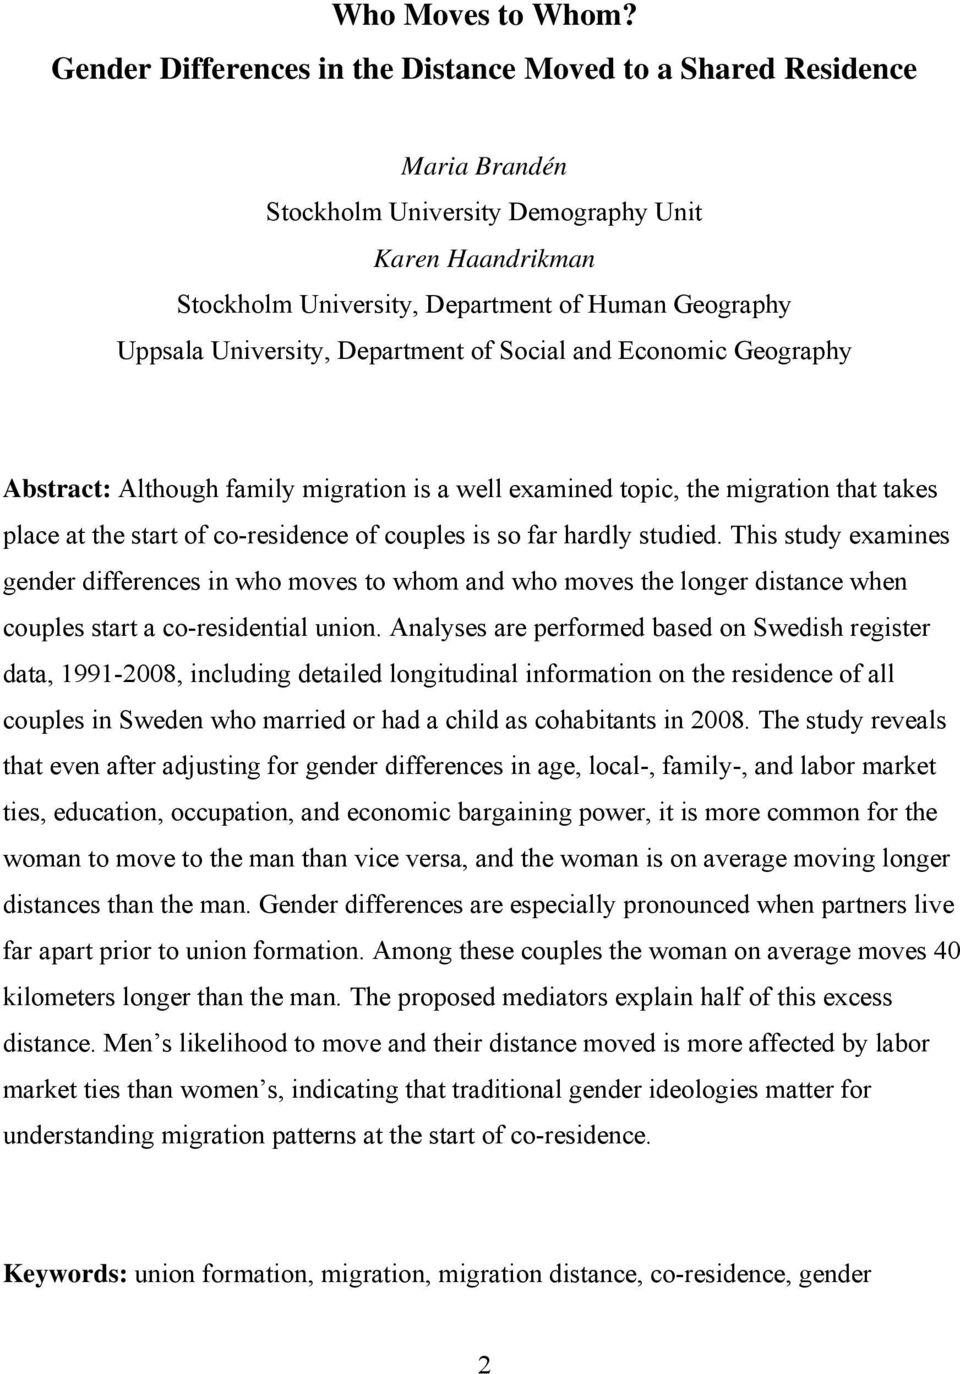 University, Department of Social and Economic Geography Abstract: Although family migration is a well examined topic, the migration that takes place at the start of co-residence of couples is so far